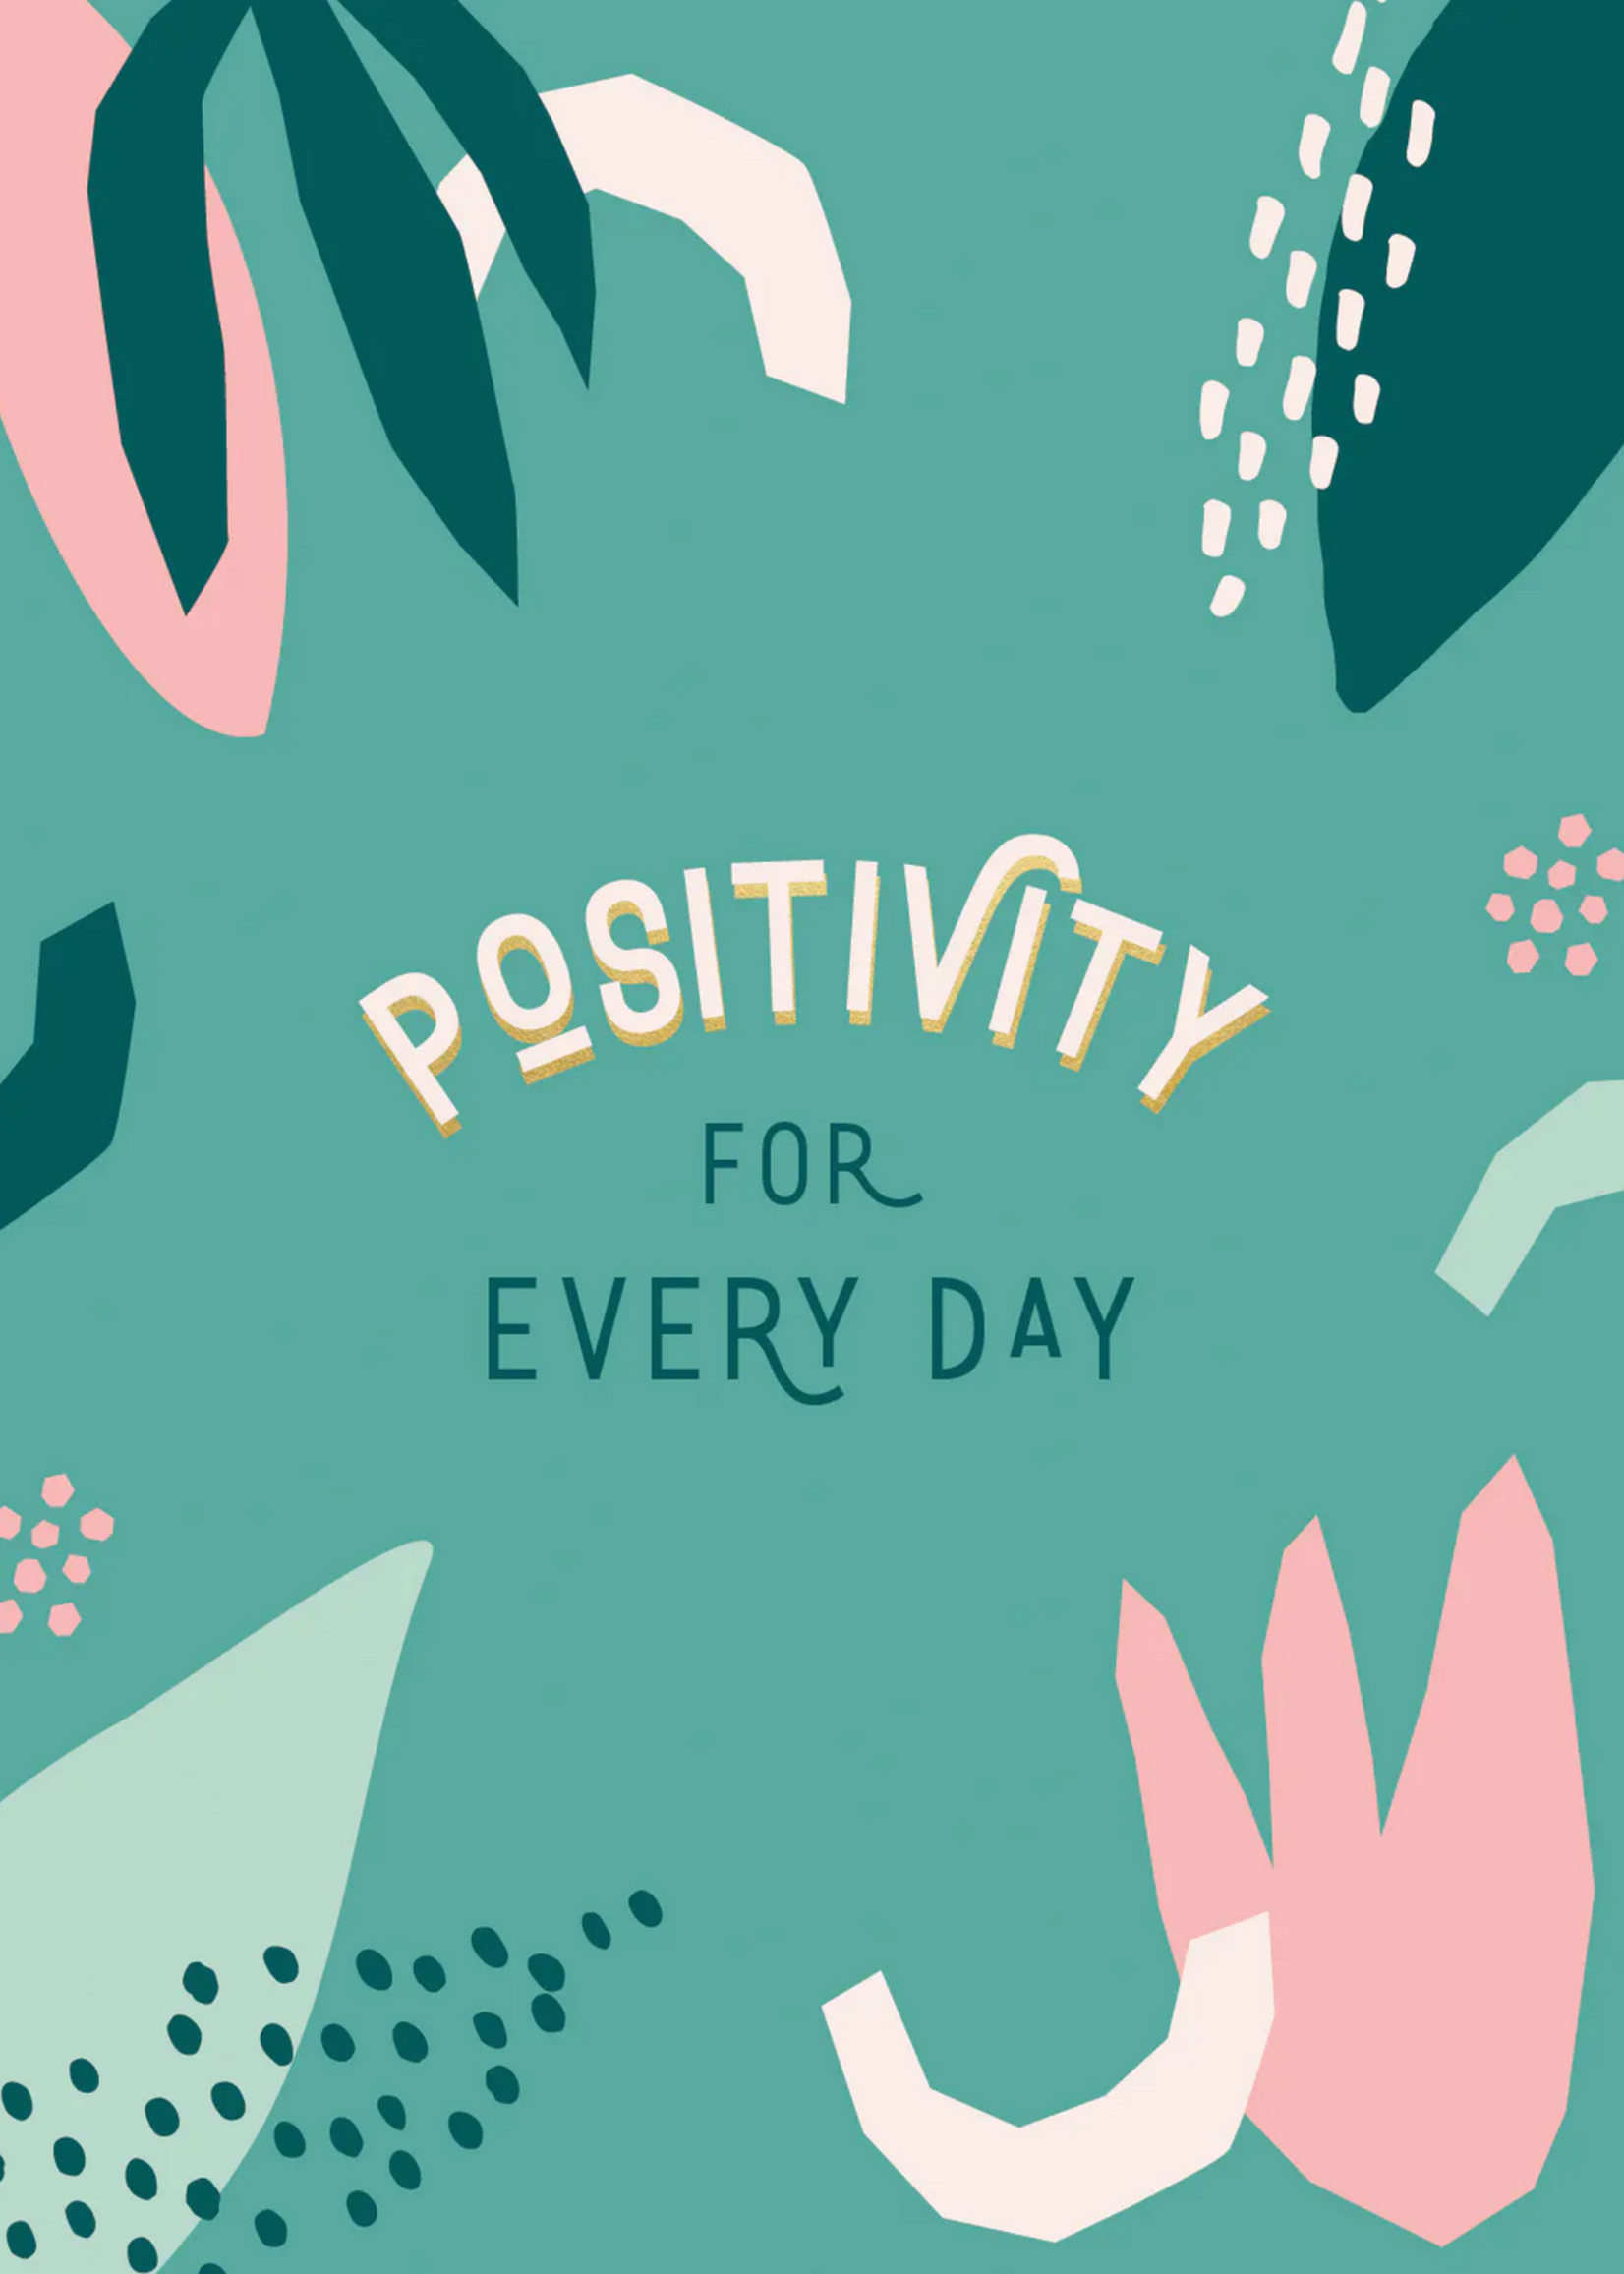 hachette book group hachette positivity for everyday book